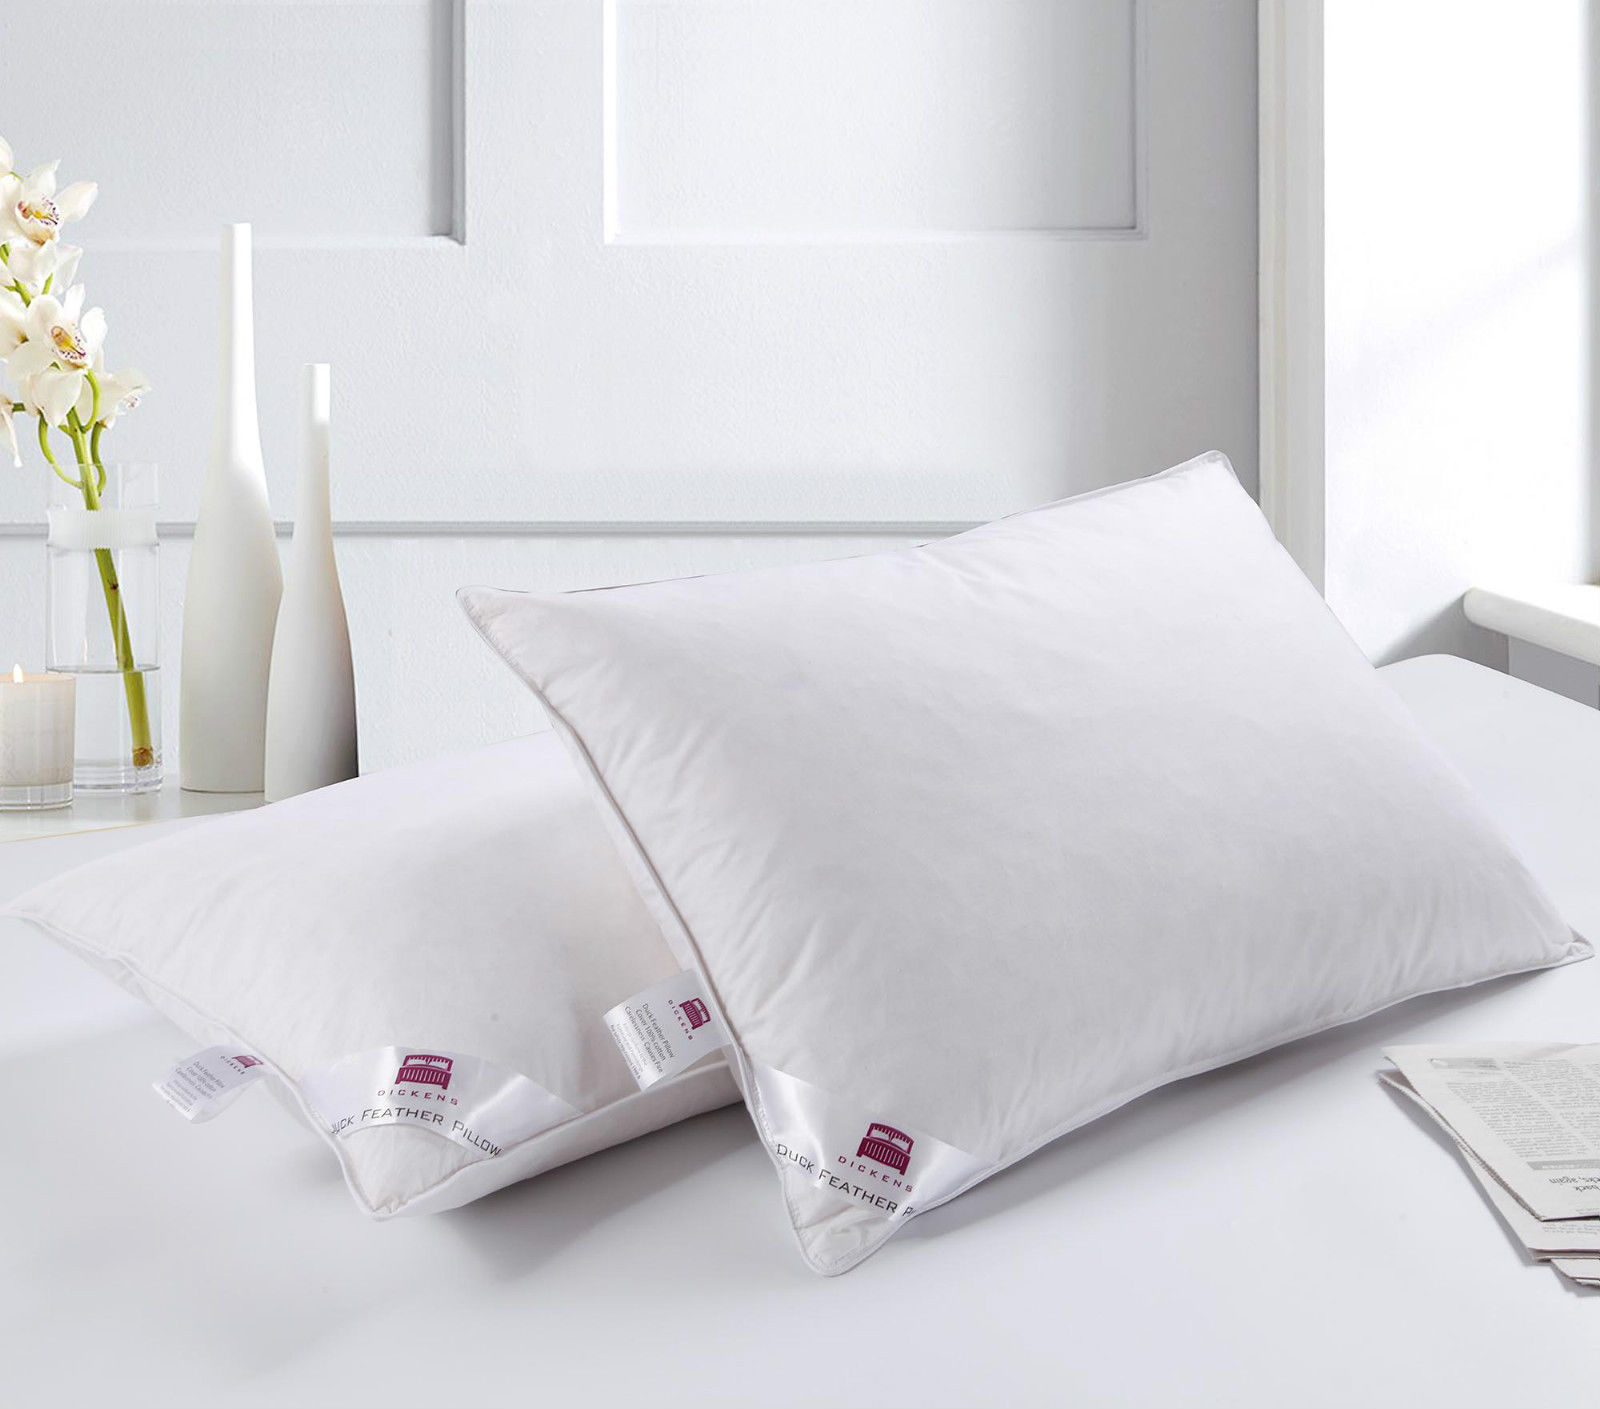 Hotel Collection Down Pillow Firm: 2 DICKENS LUXURY DUCK FEATHER & DOWN PILLOW EXTRA FILLING